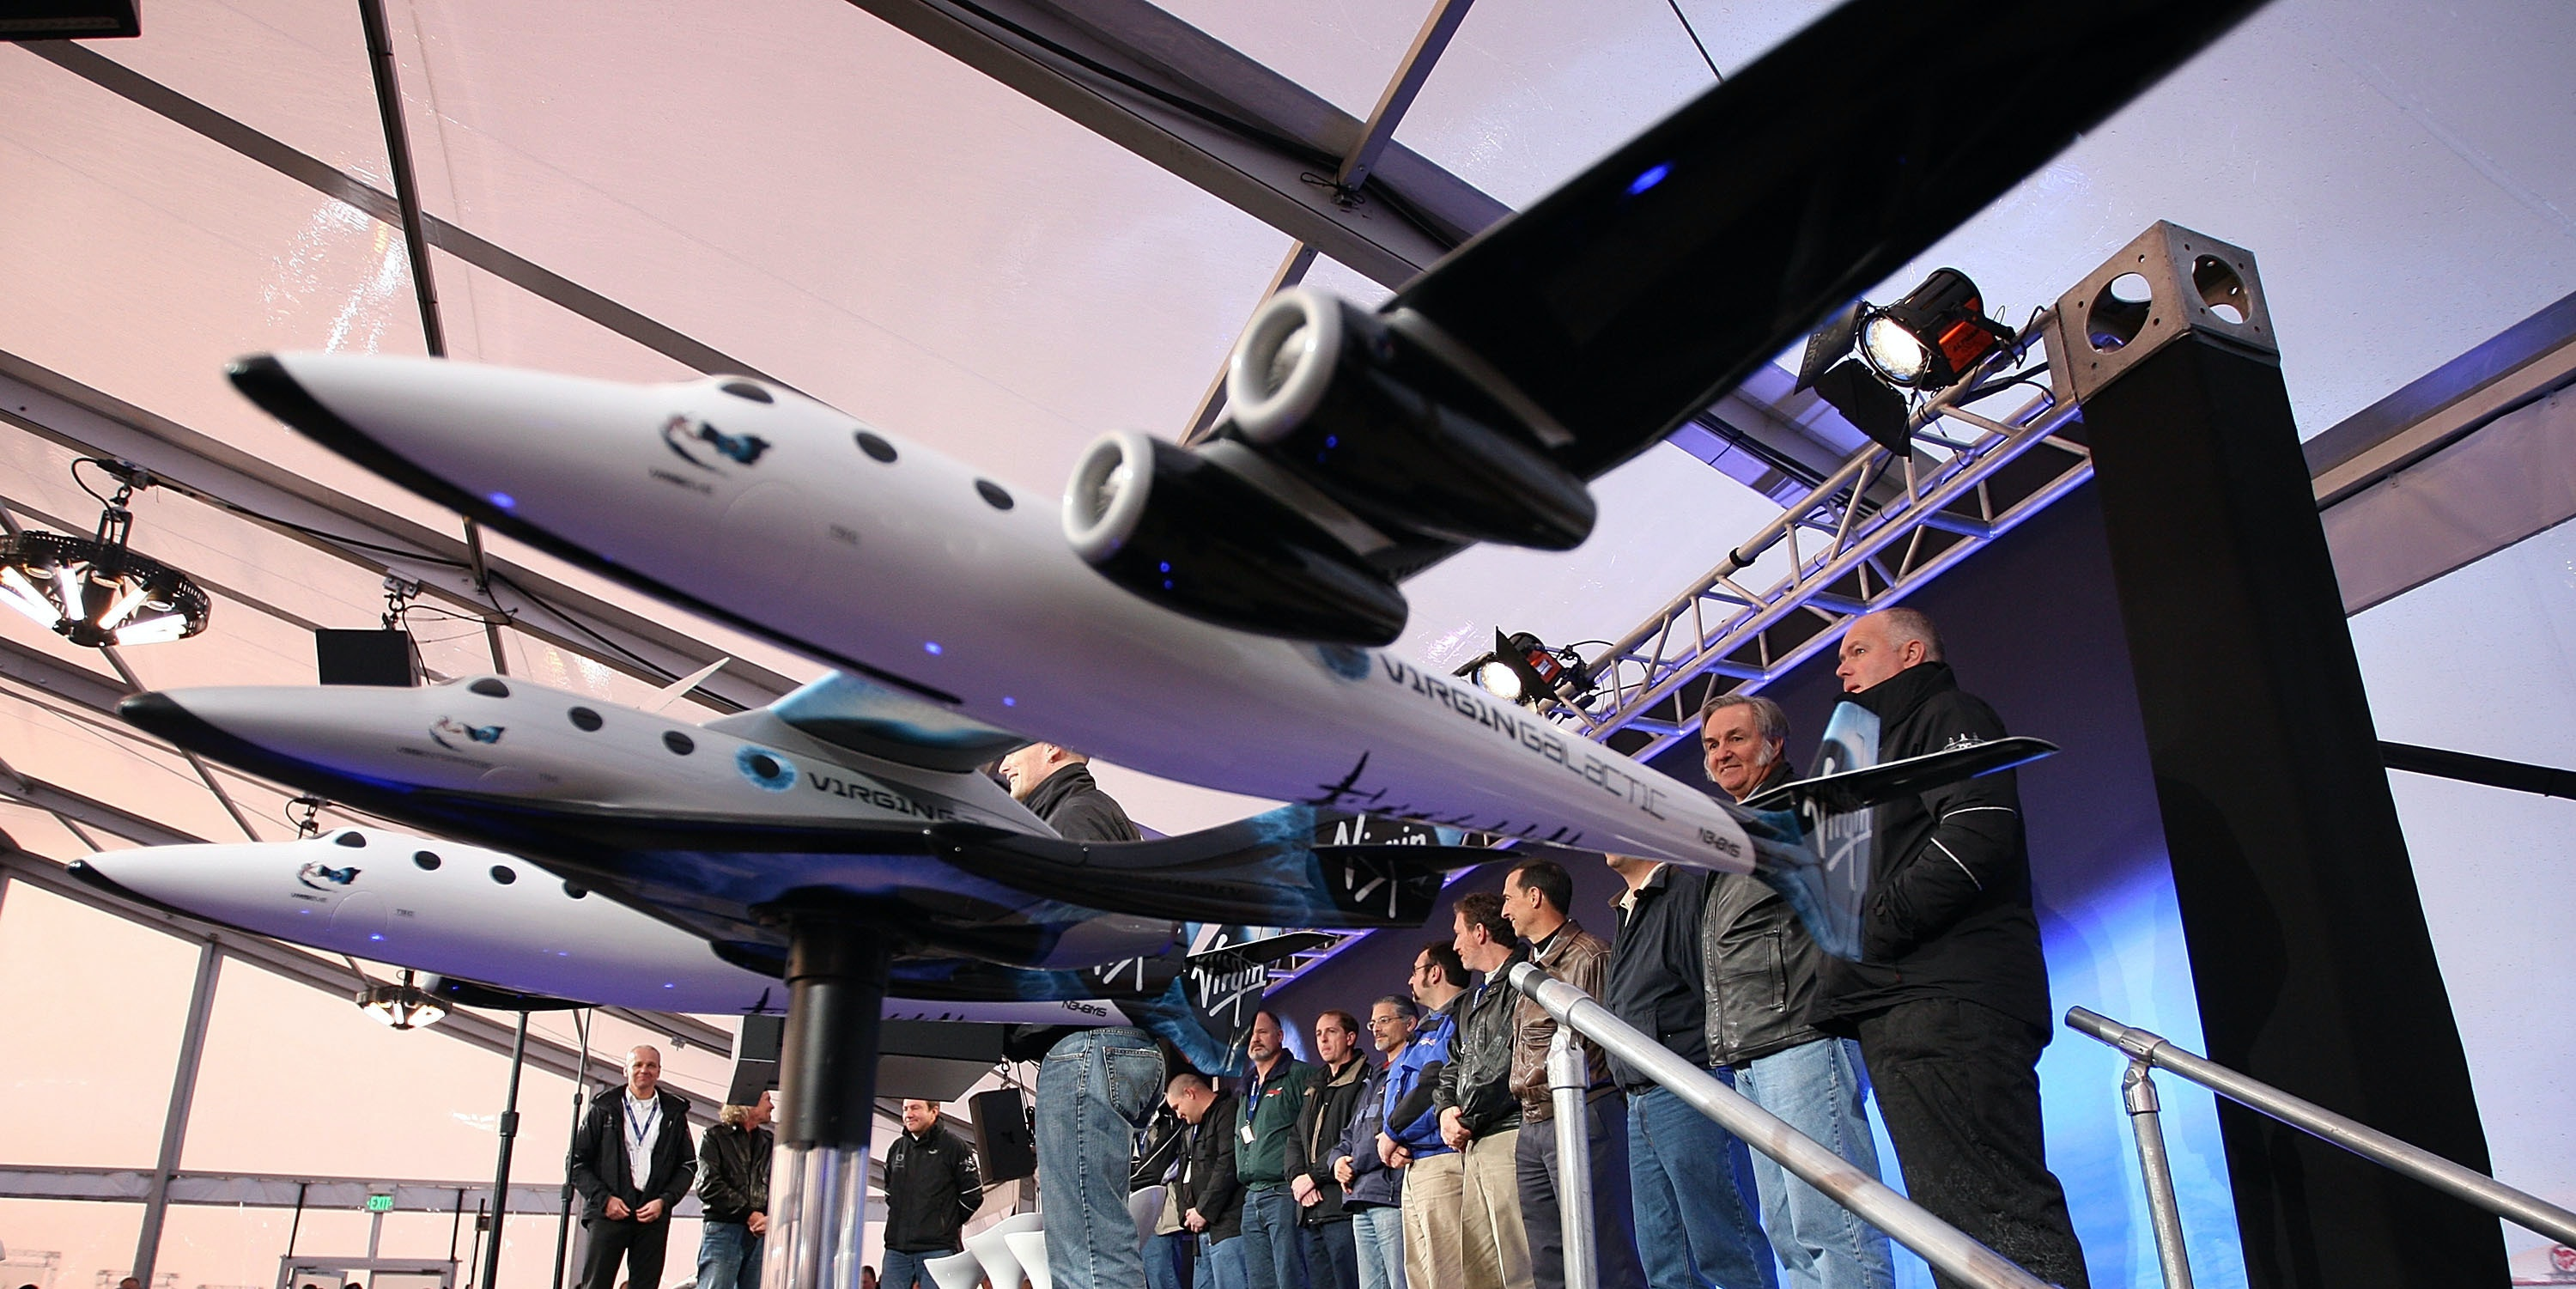 MOJAVE, CA - DECEMBER 7:  Project team members are introduced as Virgin Galactic unveils its new SpaceShipTwo spacecraft at the Mojave Spaceport on December 7, 2009 near Mojave, California. The eight-person VSS Enterprise, named after the Star Trek ship of the same name, is the first of a series of space-planes for customers of Virgin Galactic who have paid around $200,000 for a suborbital flight into space. British entrepreneur Sir Richard Branson is financing the spacecraft and aerospace designer Burt Rutan is building it through The Spaceship Company, a joint venture of Scaled Composites and Virgin Group.   (Photo by David McNew/Getty Images)